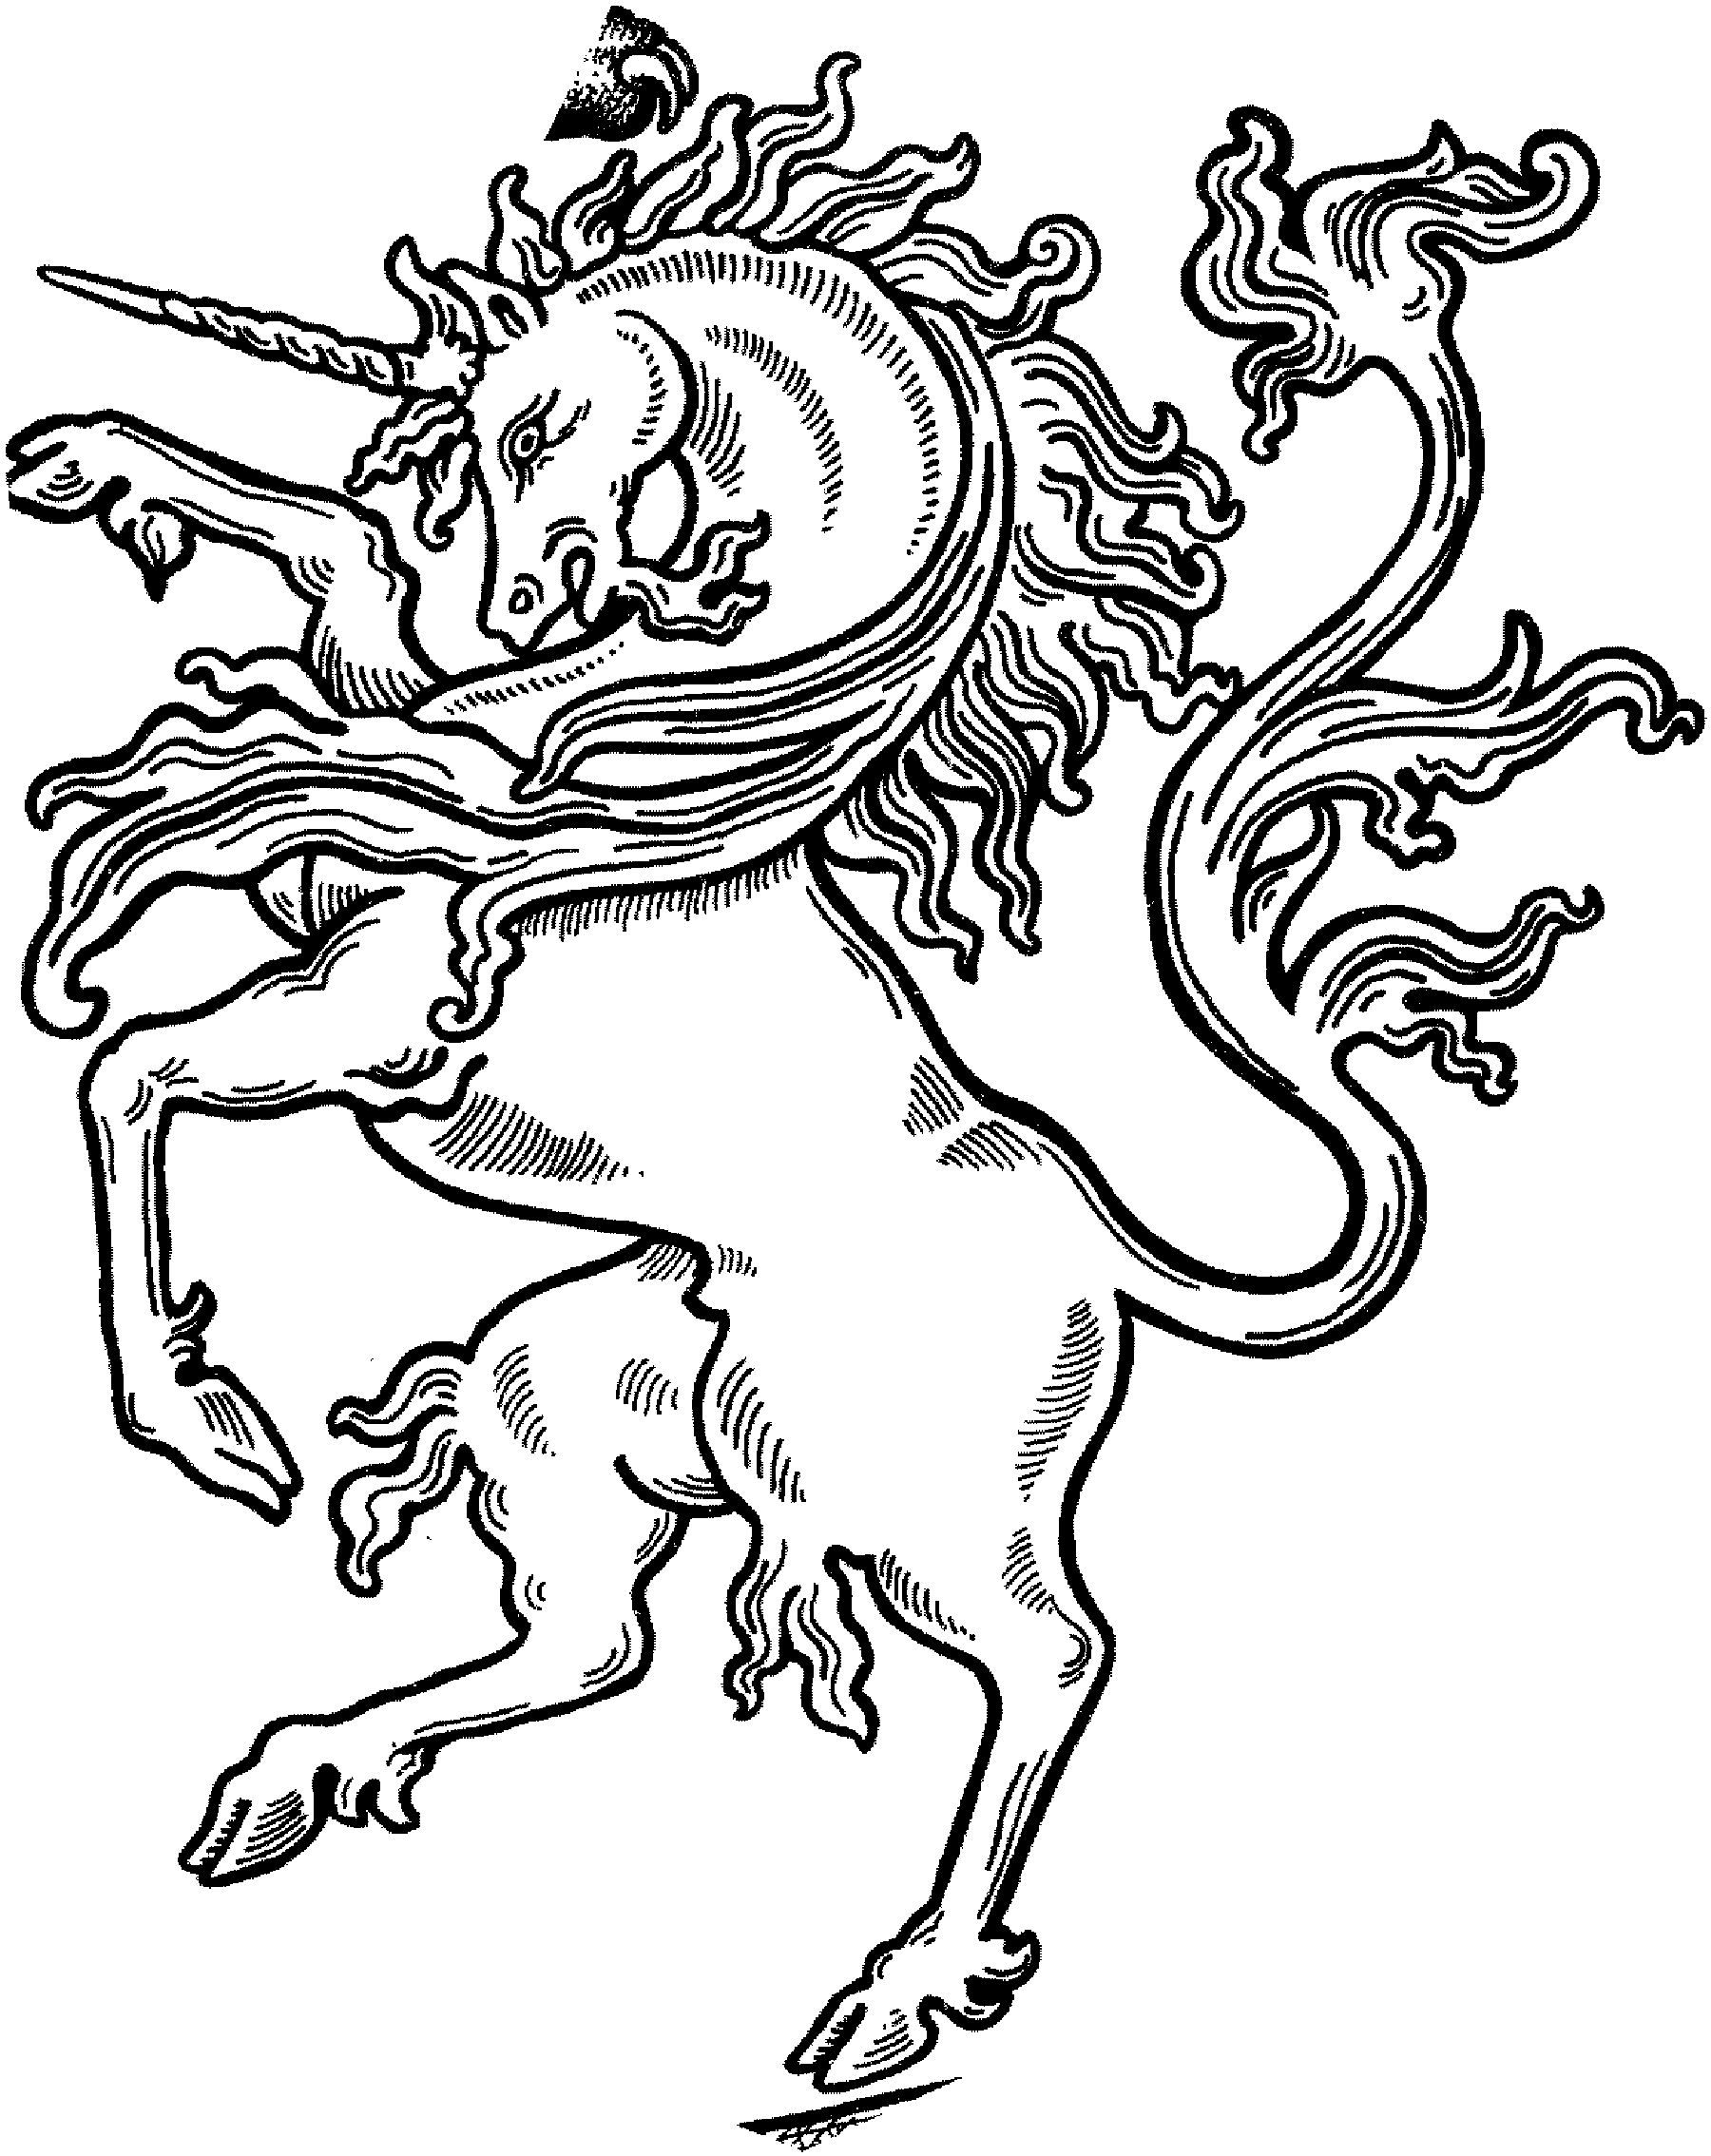 Complicolor Unicorn Coloring Sheet Mythiccreatures Printable Pages And Coloring Books For